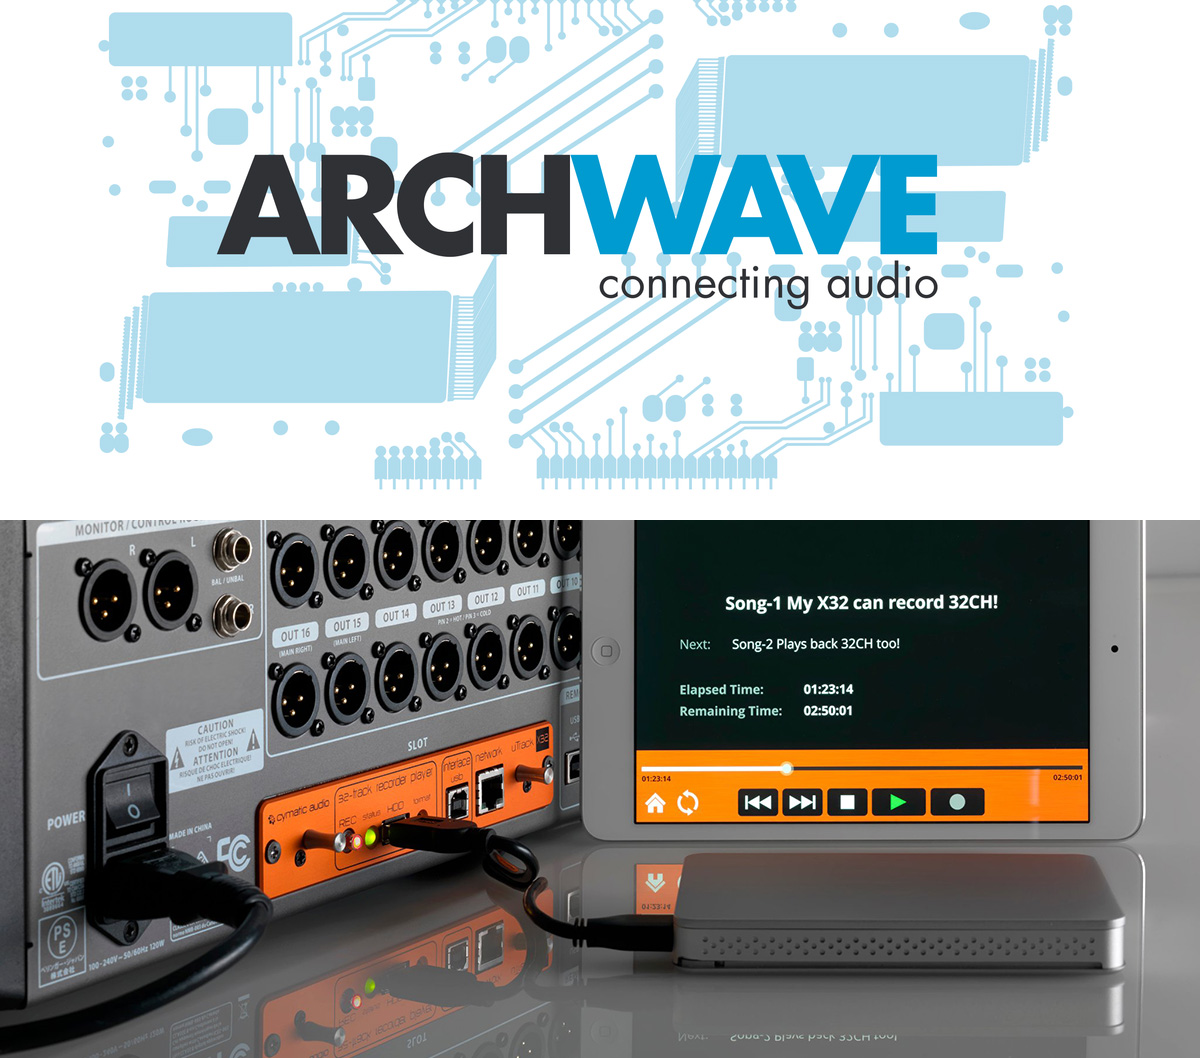 Riedel Acquires Archwave and Cymatic Audio and Creates Zurich IP Engineering Hub